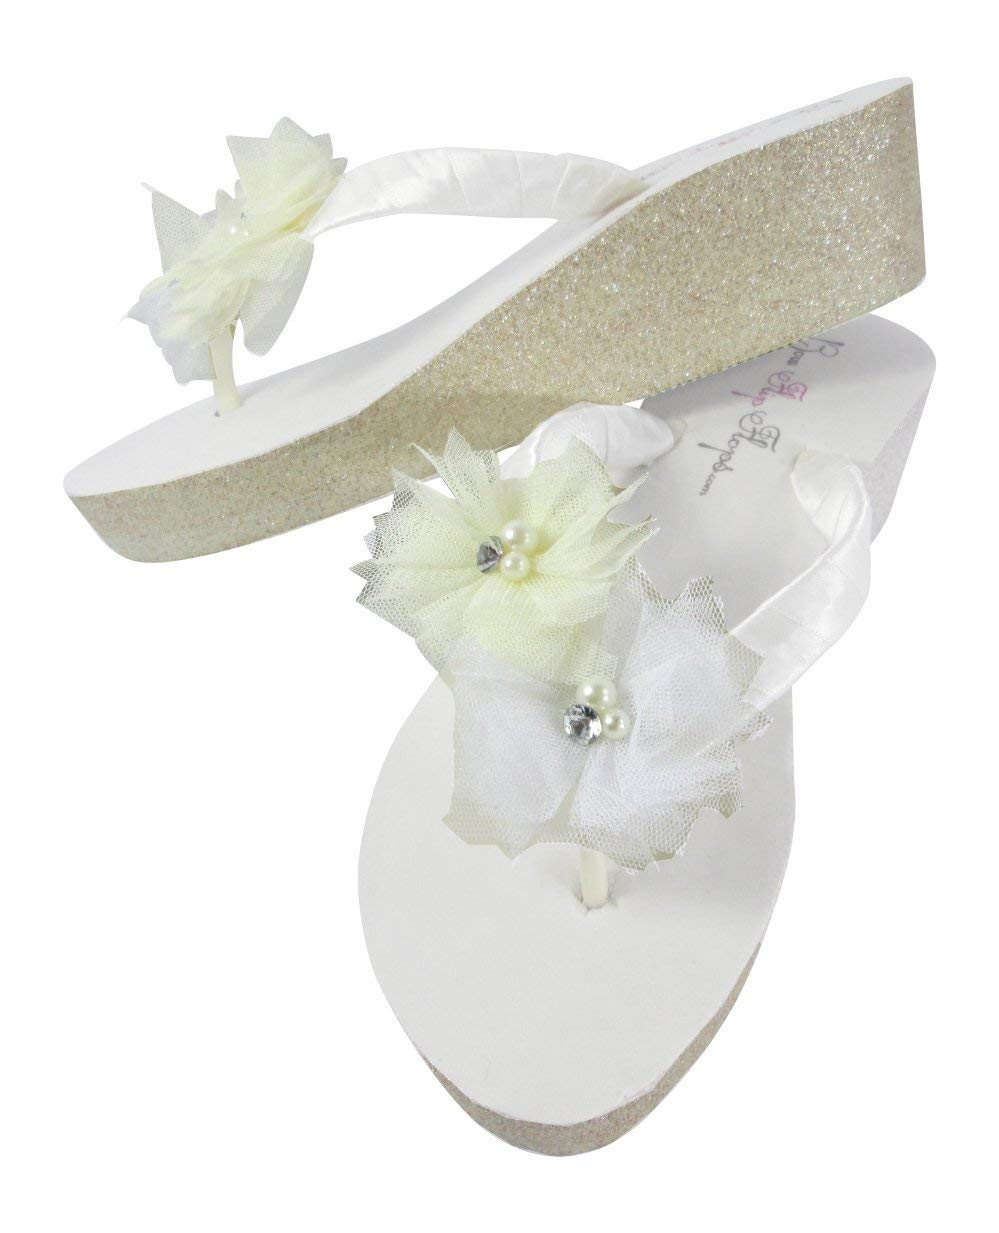 8a65bae58d85 Get Quotations · White Bridal Flip Flops with Tulle Flowers on Glitter  Wedges in Champagne Silver or Gold